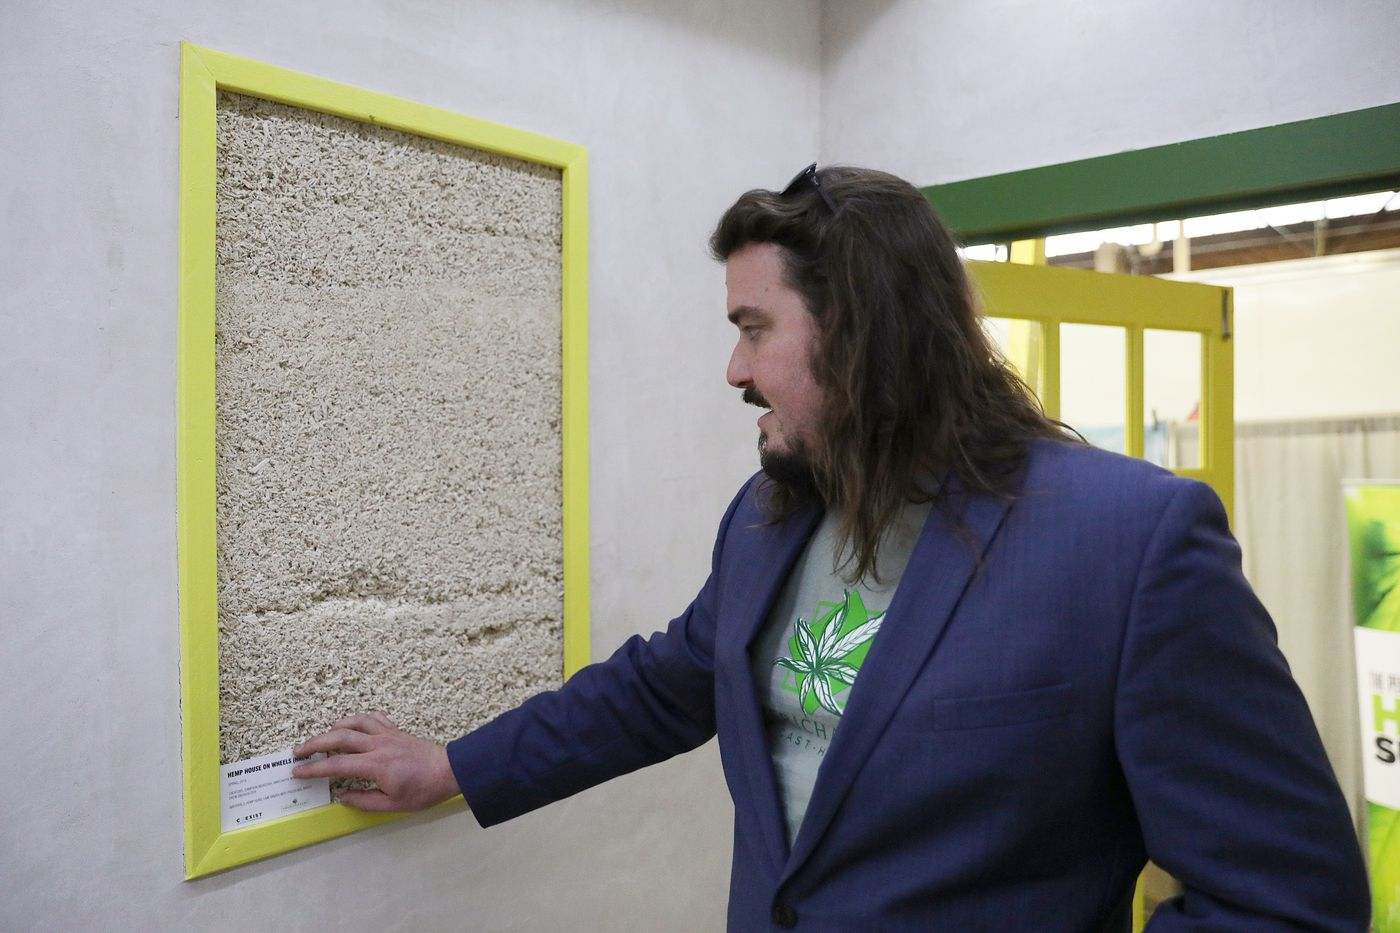 """Cameron McIntosh, builder of the """"Hemp House on Wheels,"""" talks about """"hempcrete"""" — a bio-composite insulation material — used in the house at the Pennsylvania Hemp Industry Council's exhibit during the annual Pennsylvania Farm Show at the Pennsylvania Farm Show Complex & Expo Center in Harrisburg, Pa., on Jan. 7, 2020."""